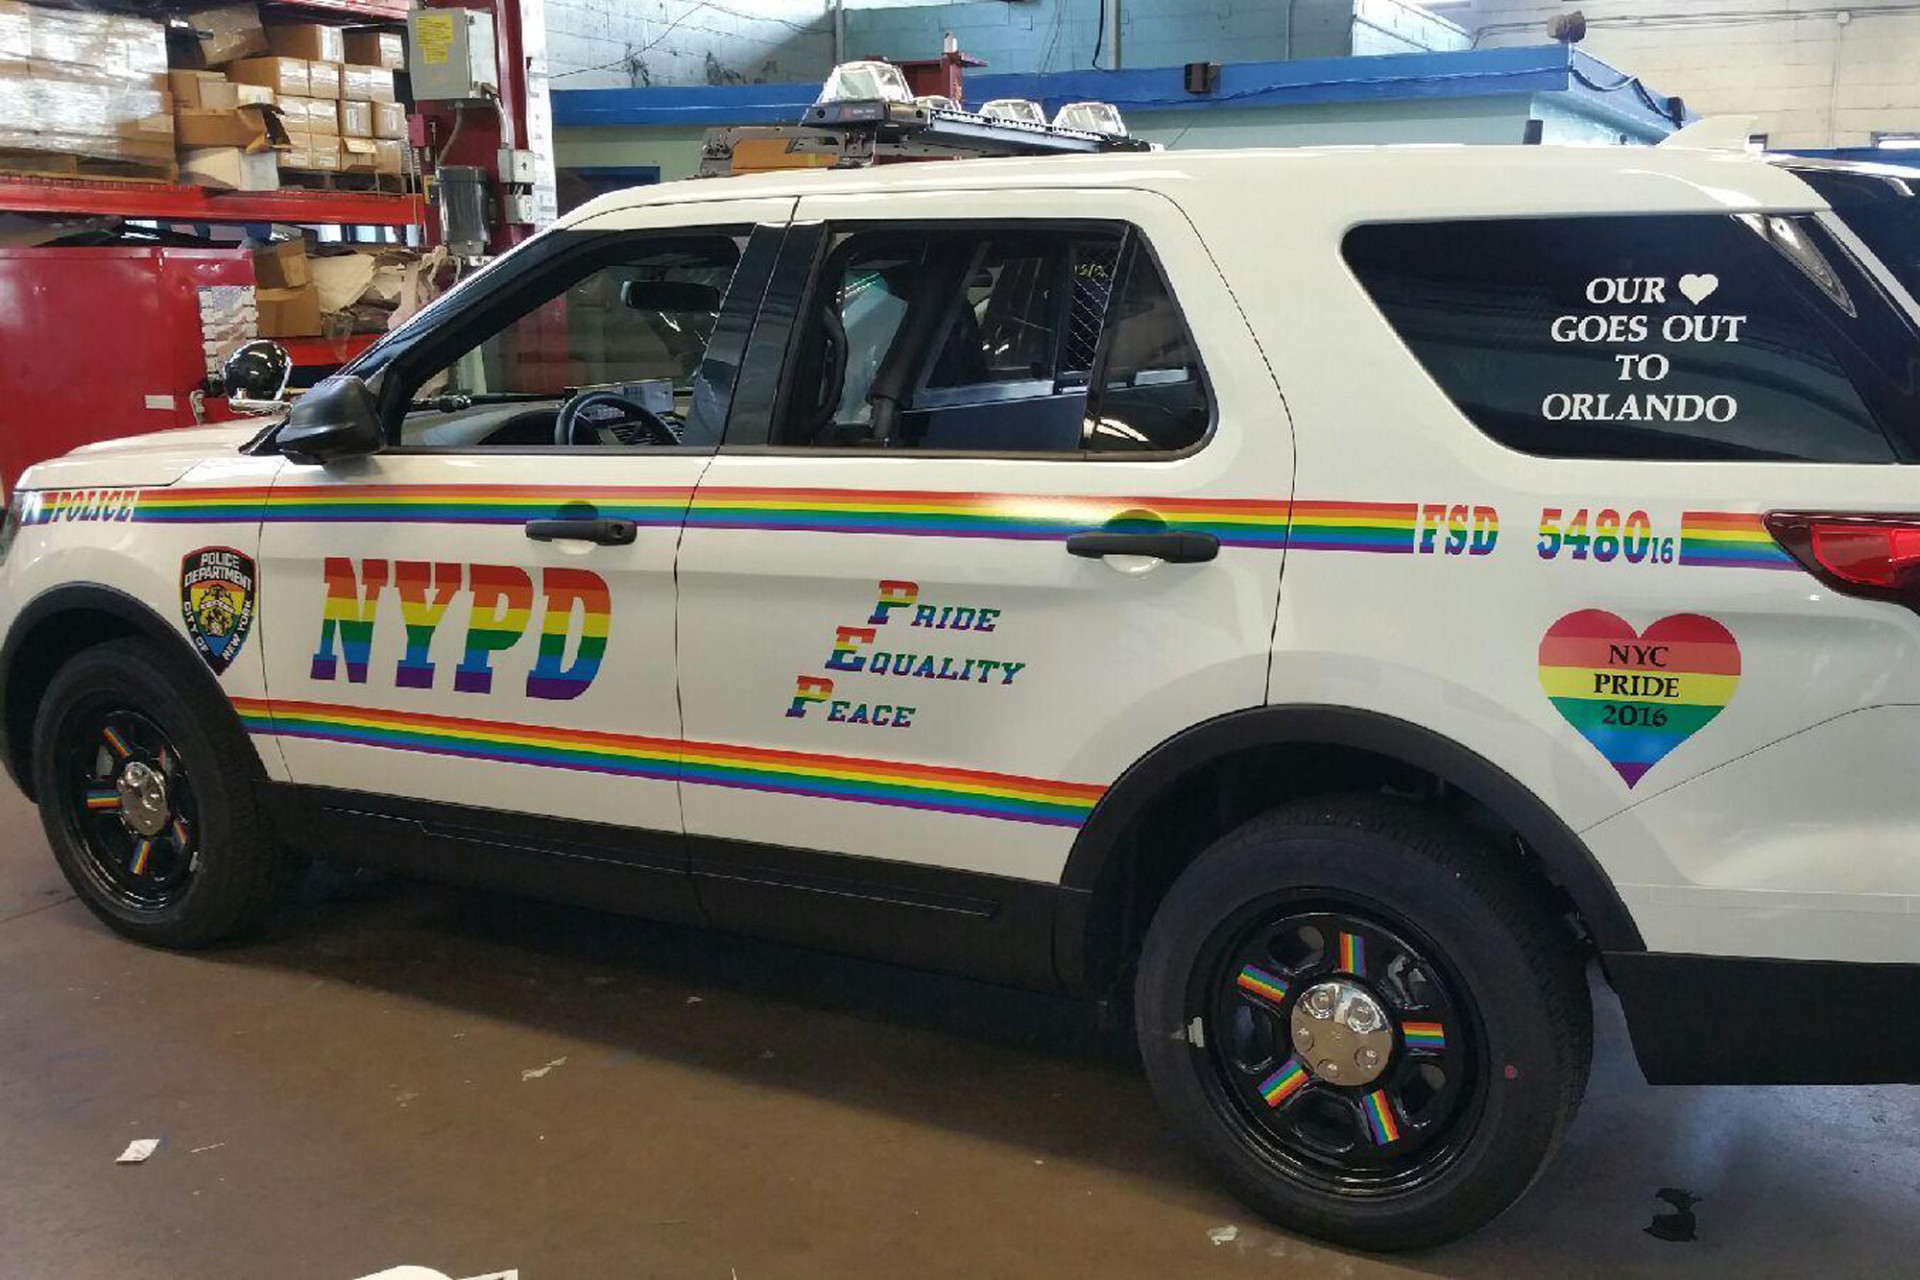 Nypd honors orlando victims supports lgbt community with for Department of motor vehicles orlando fl